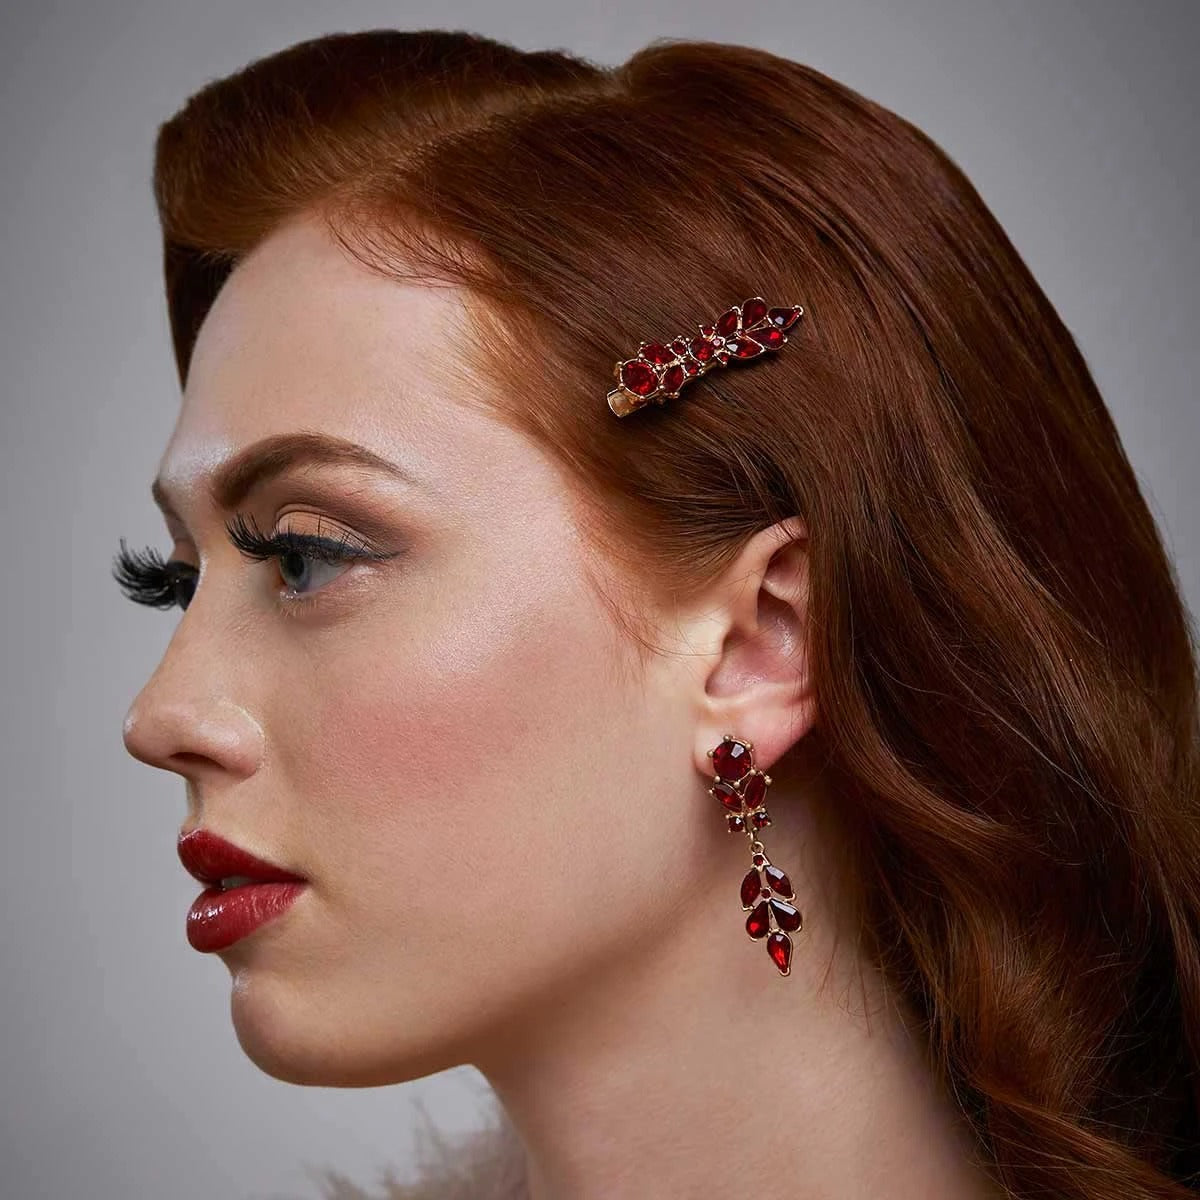 Lovett Hair Access - Antique Diamante